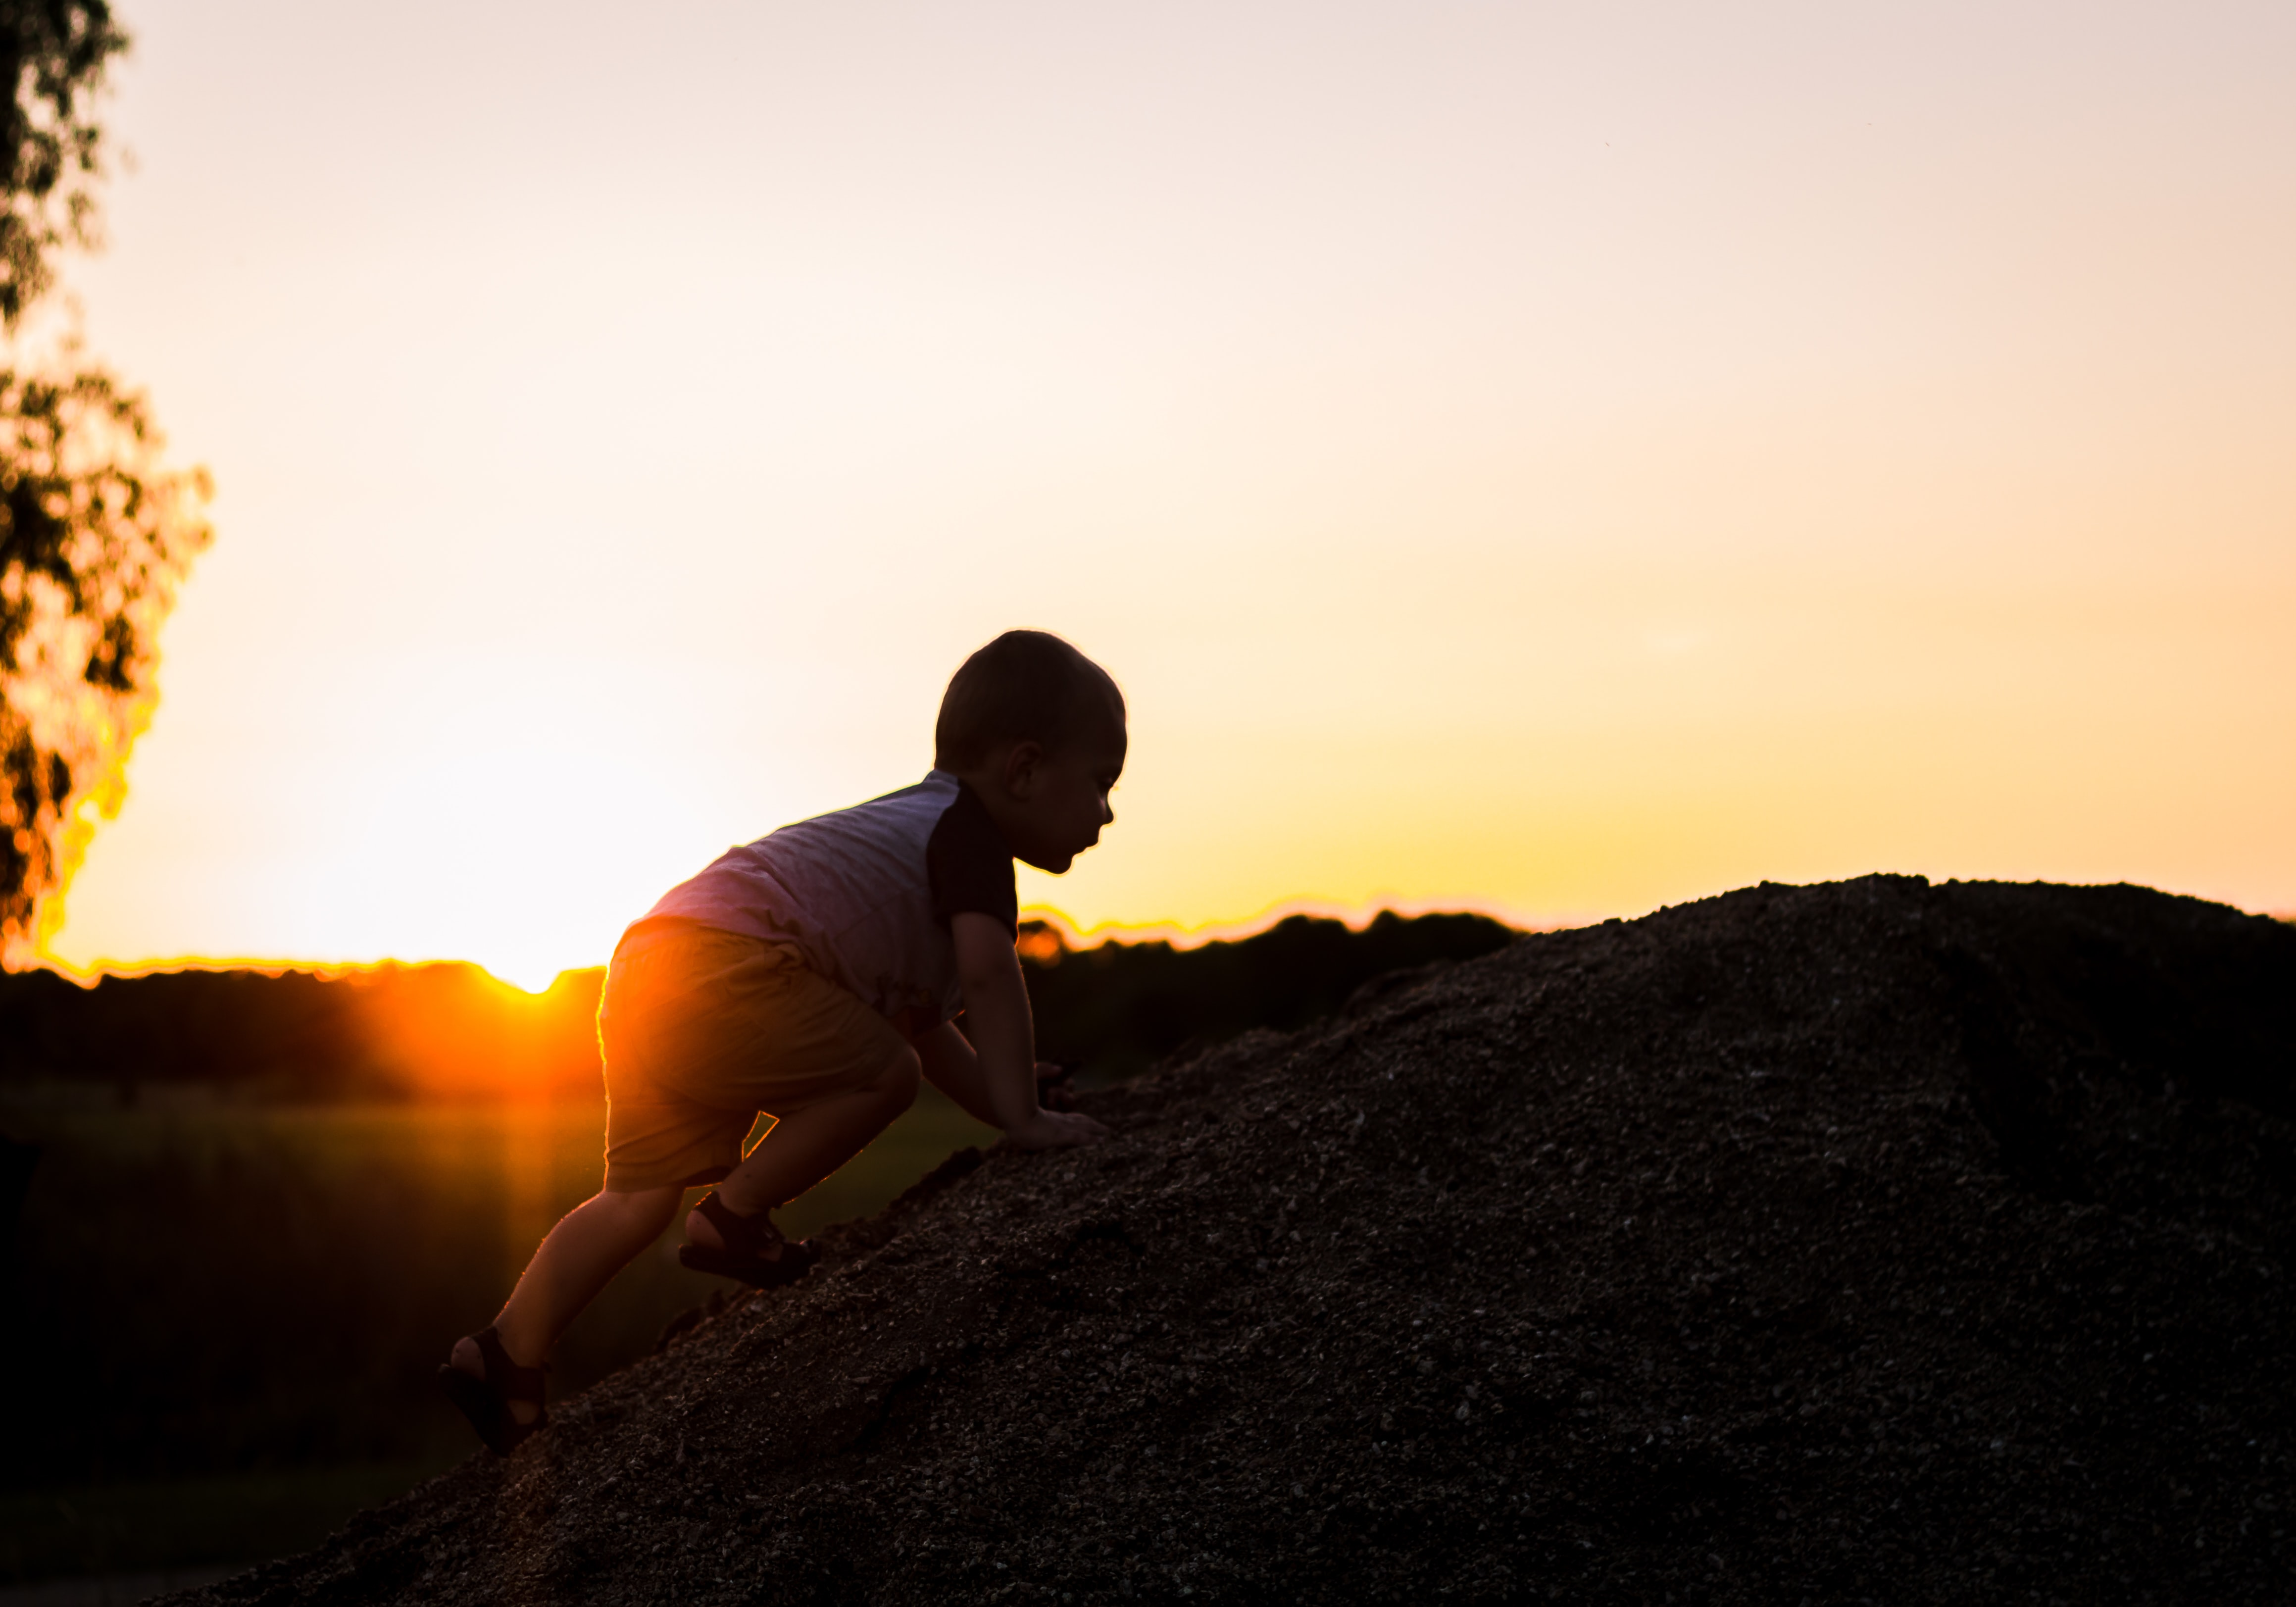 silhouette photography of child climbing on rock